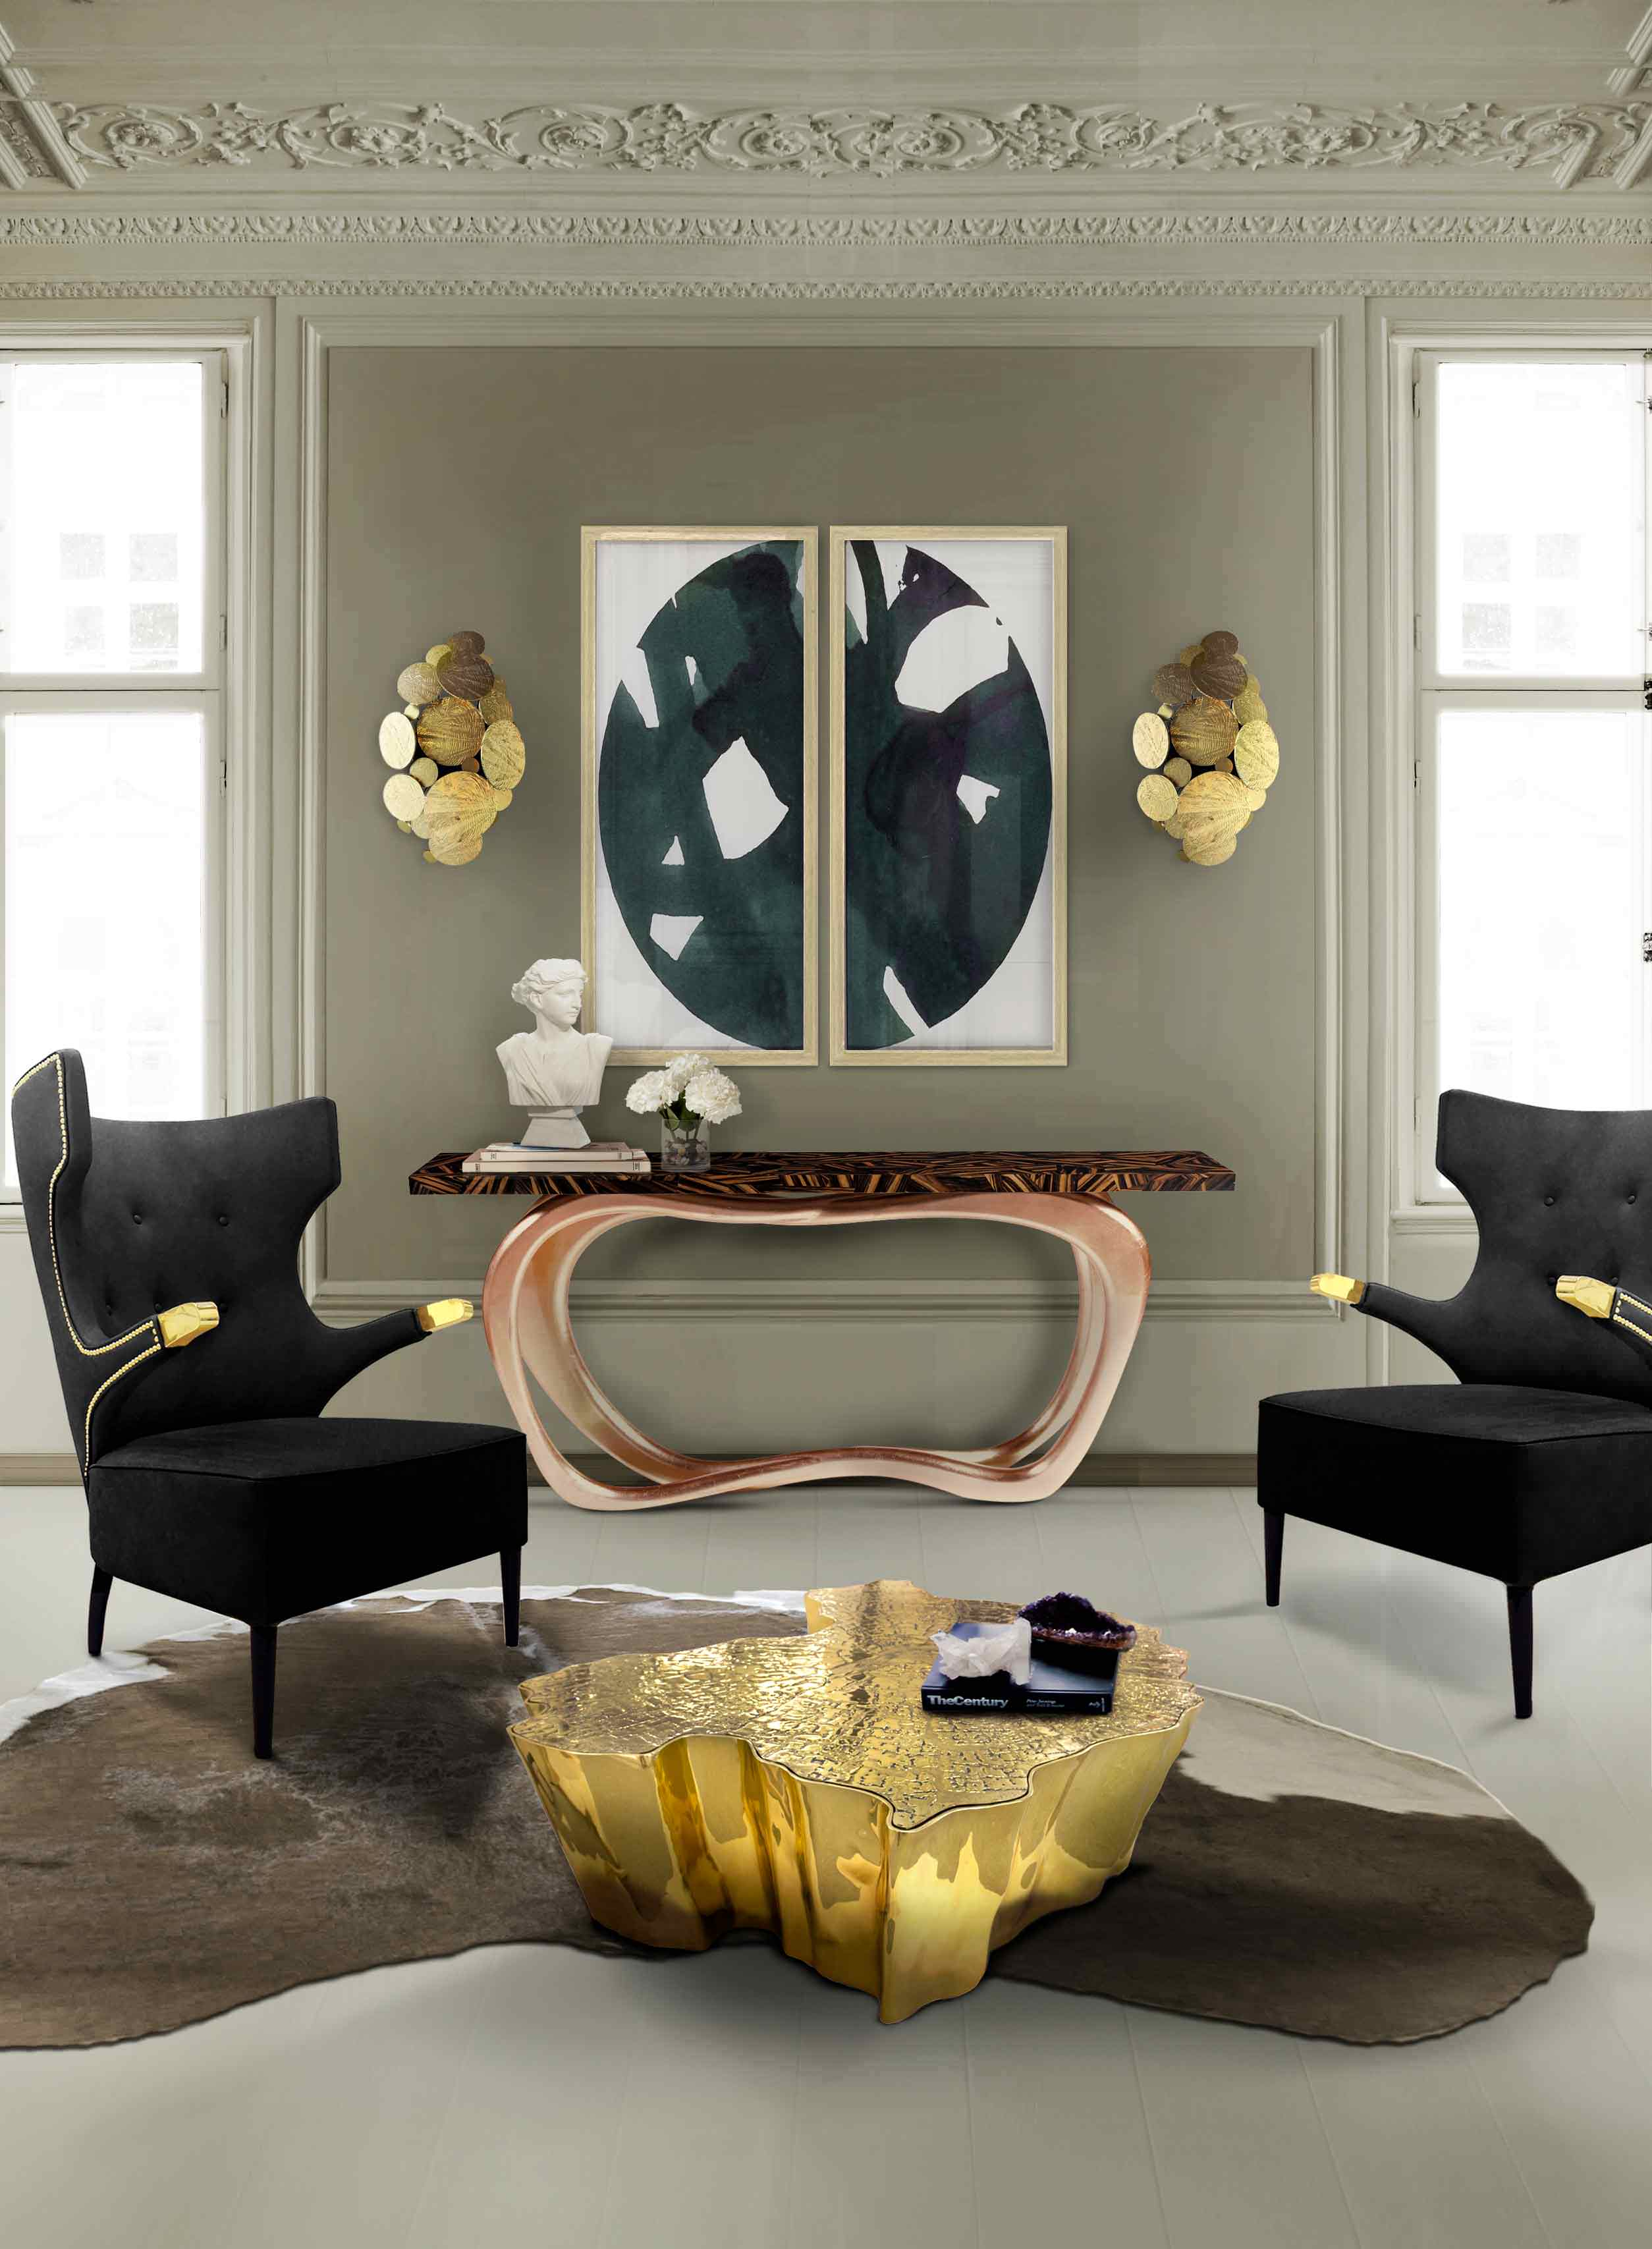 The Infinity Console Foyer Table exhales style, grace and luxury. The sinuous and elegant lines of this console table will look stunning in either a modern or classic (...)